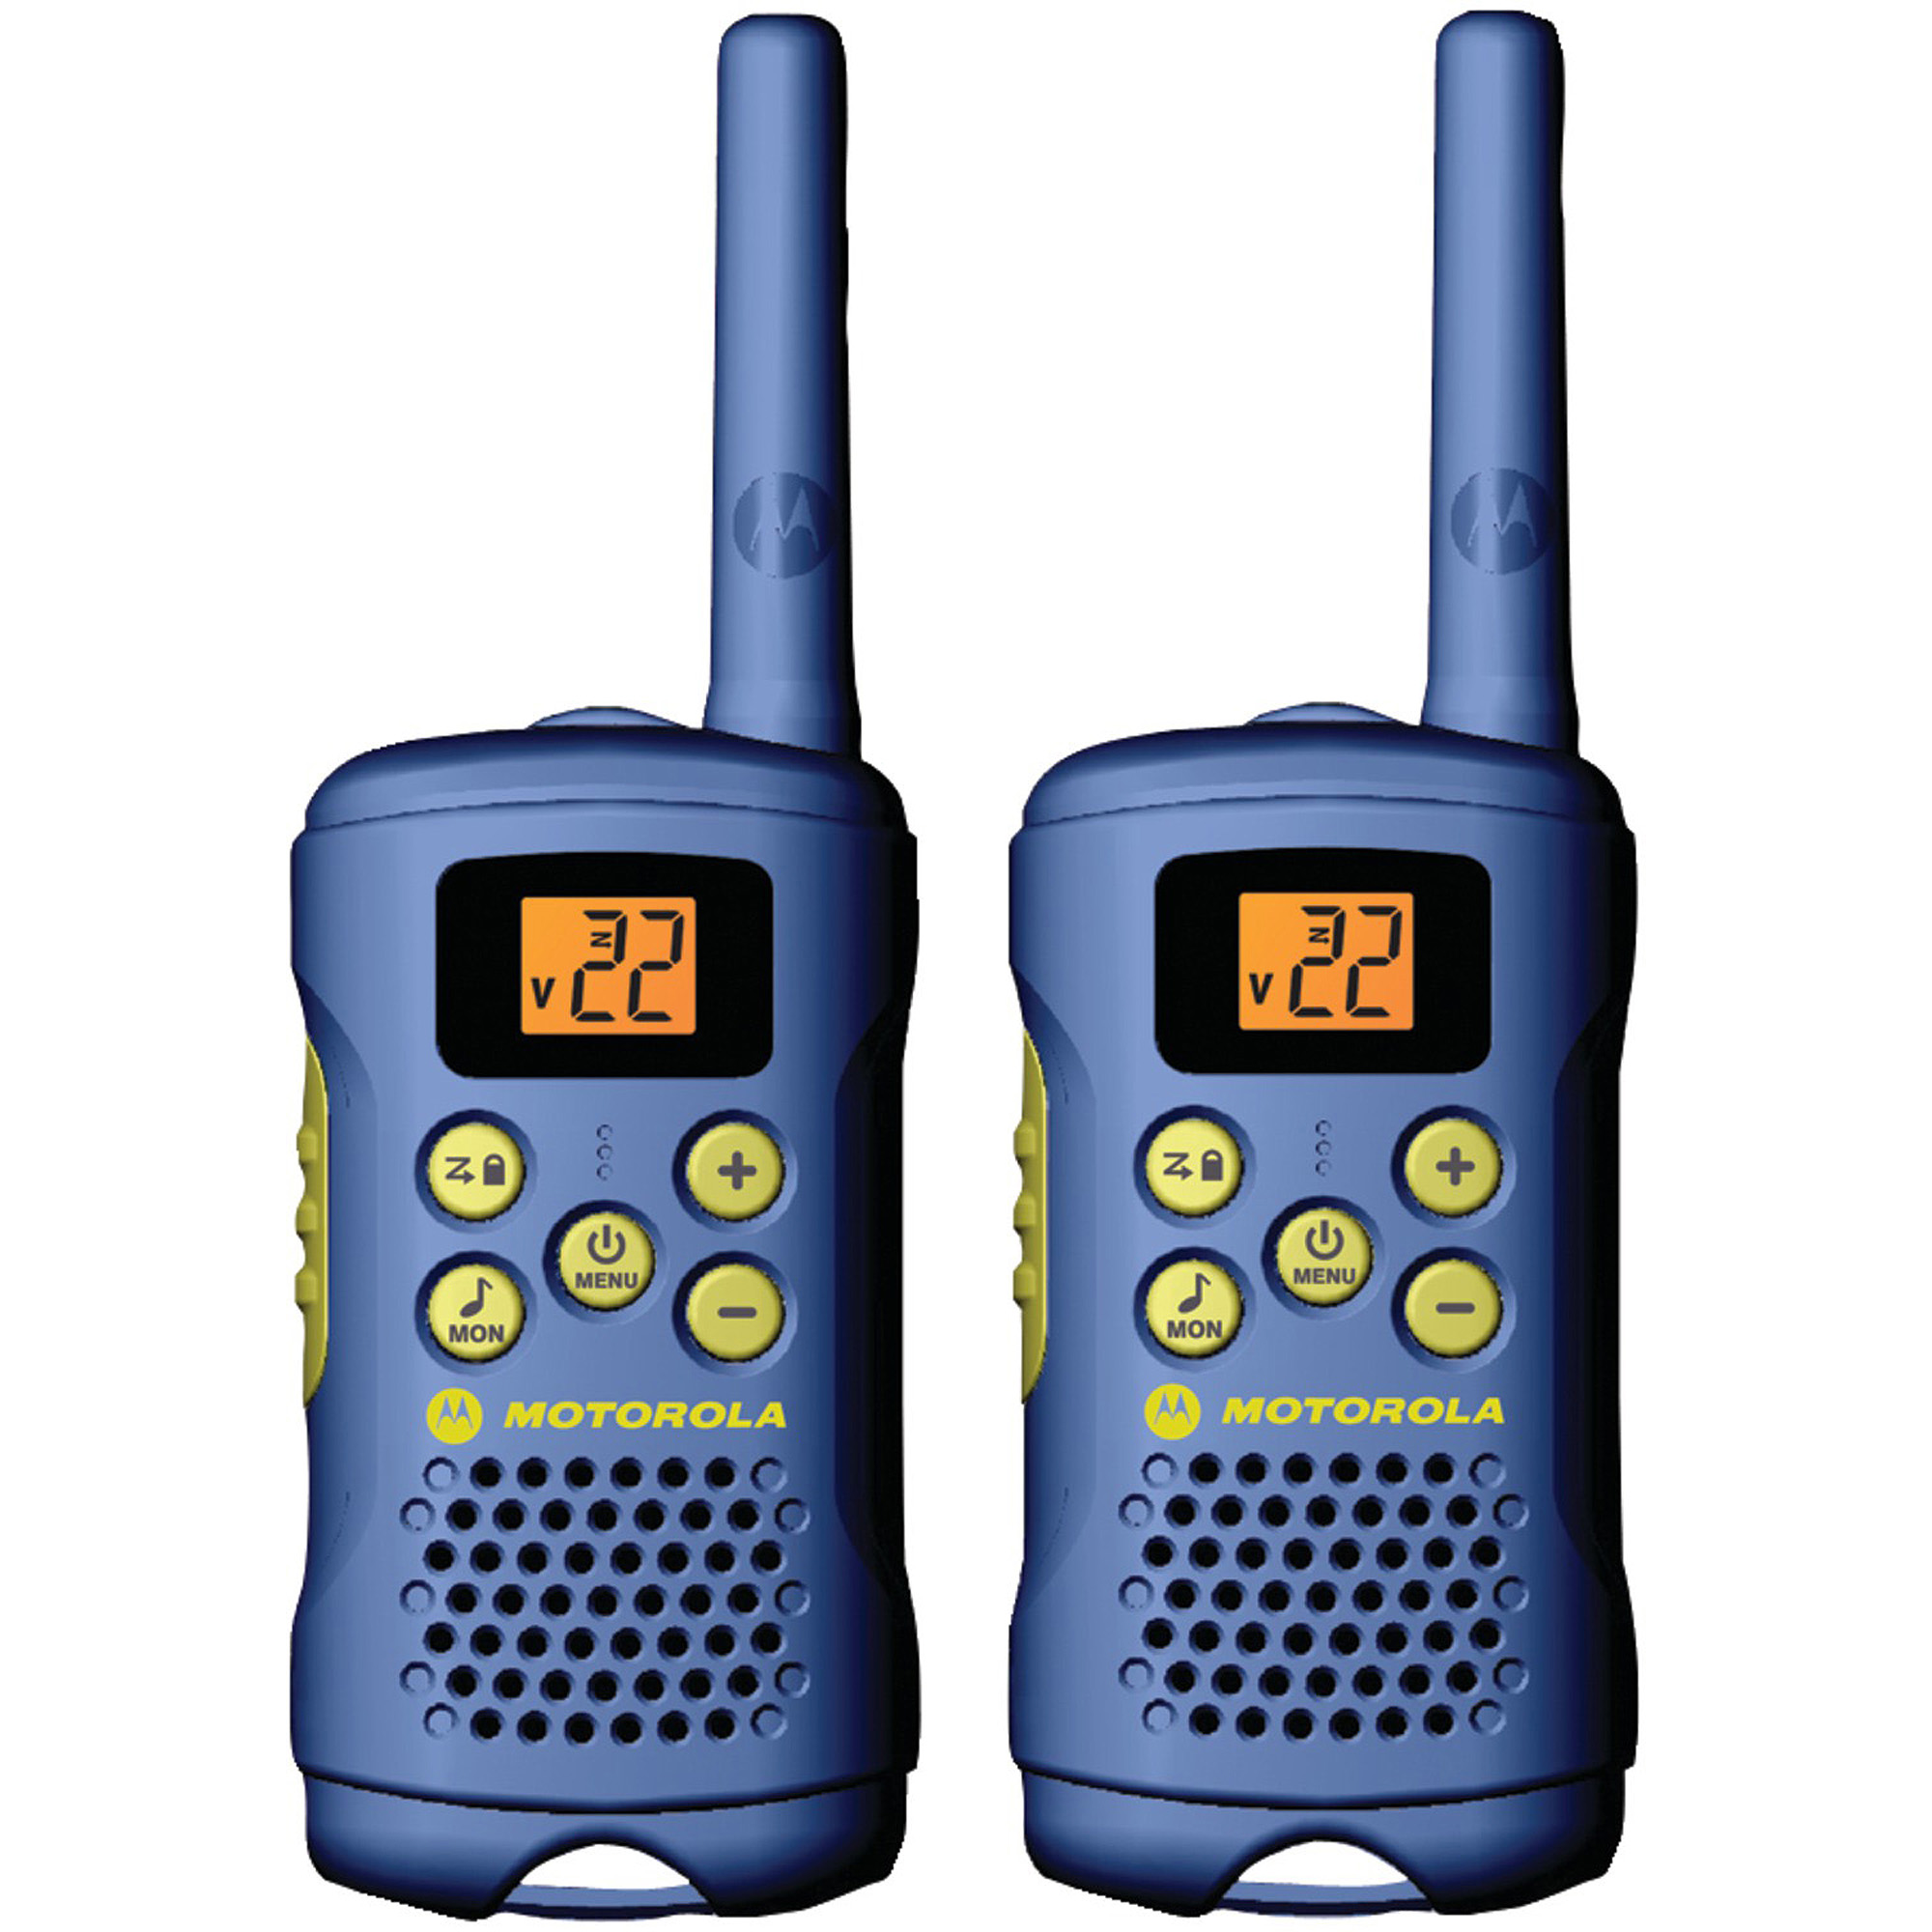 Motorola MG160A -16 Mile Talkabout 2-Way Radios (Blue), PAIR